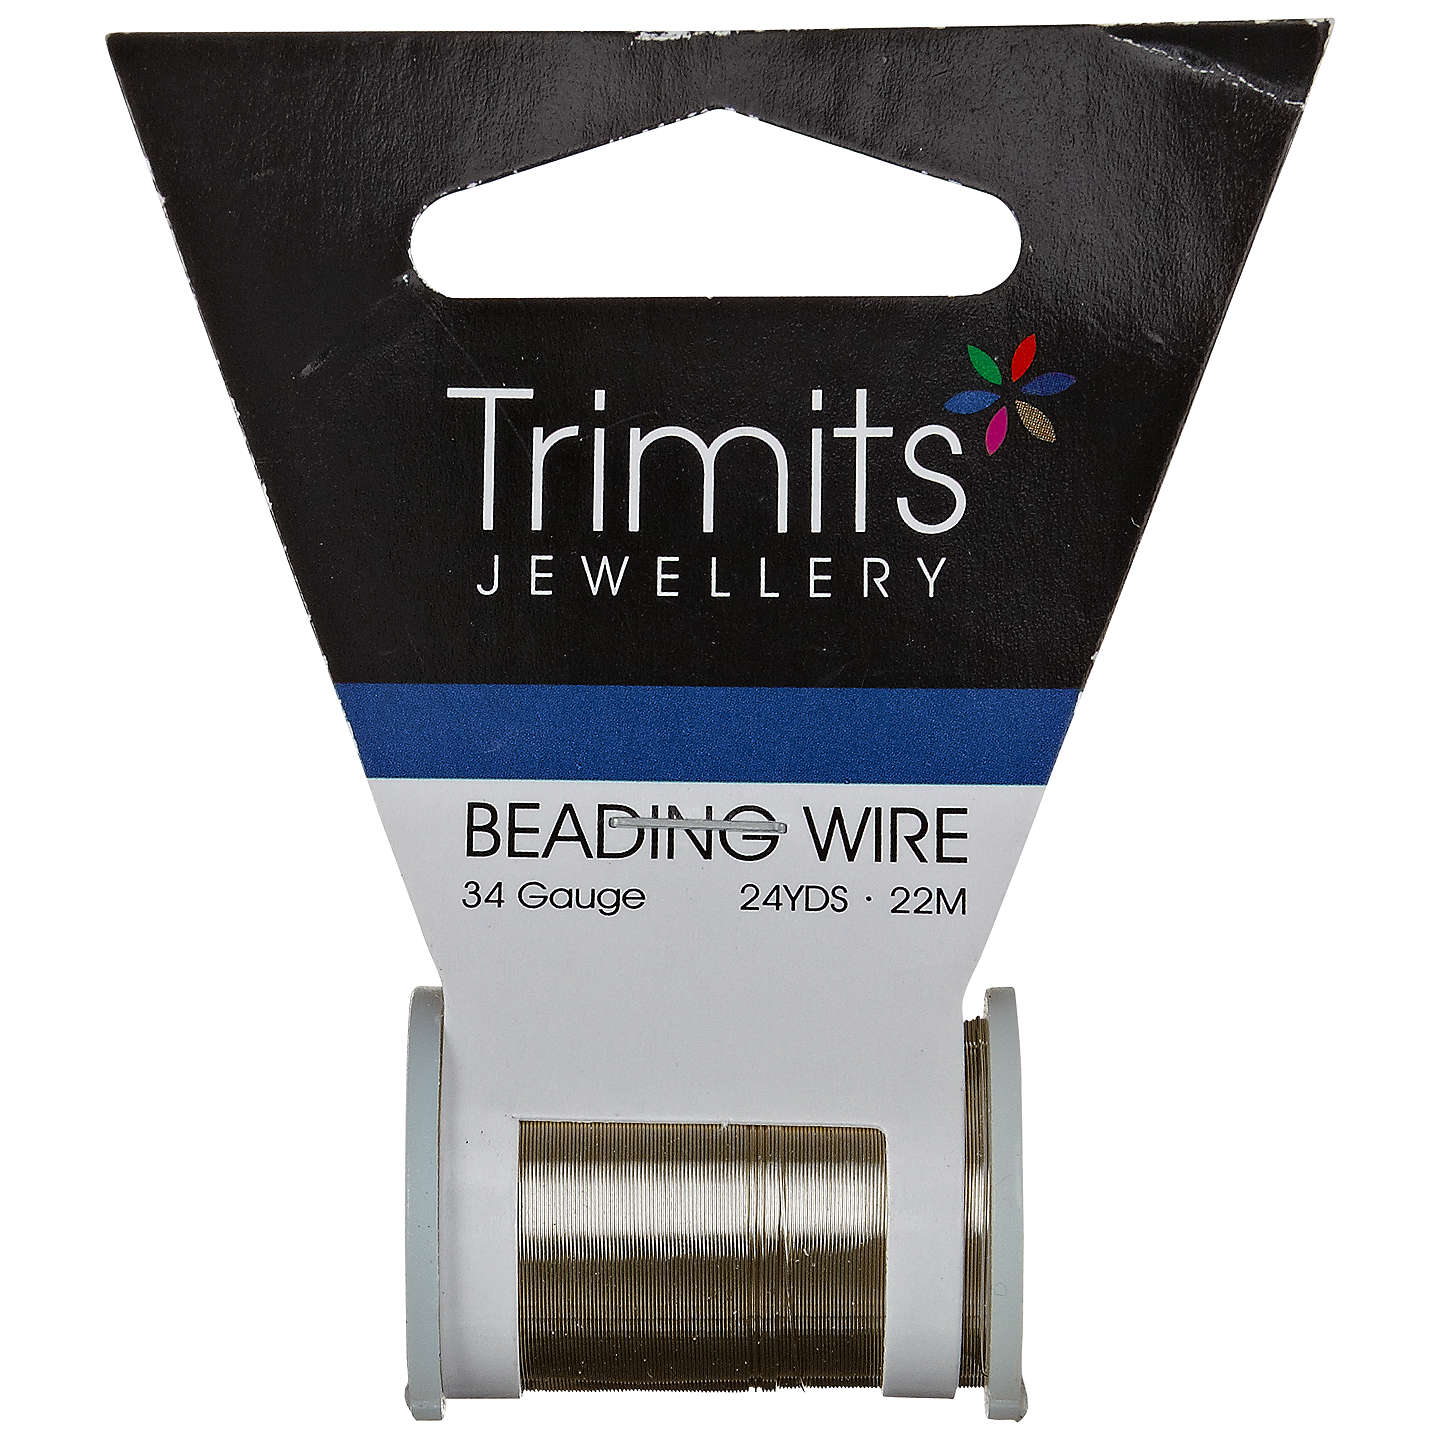 Trimits beading wire 34 gauge wire center groves a la mode 34 gauge beading wire 21 94m at john lewis rh johnlewis com wire gauge and amperage ratings standard wire gauge greentooth Choice Image